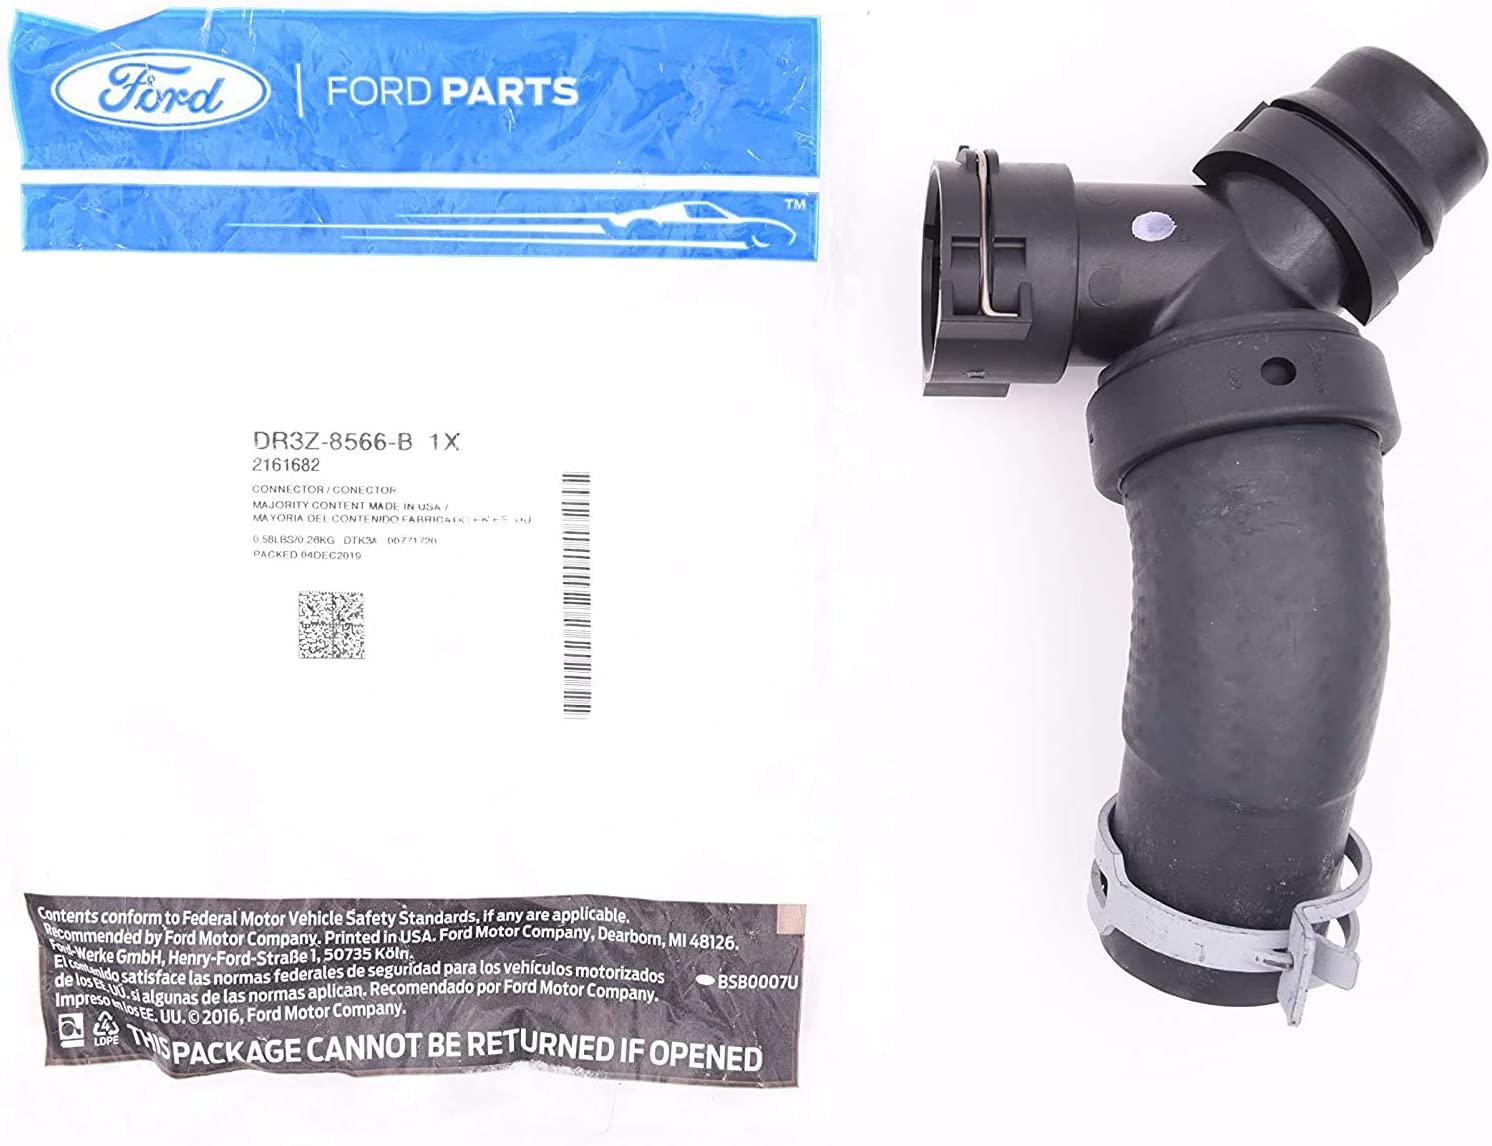 reilfastprts DR3Z-8566-B F150 Mustang 5.0L Valve Coyote Reservation 4 Radi New Orleans Mall